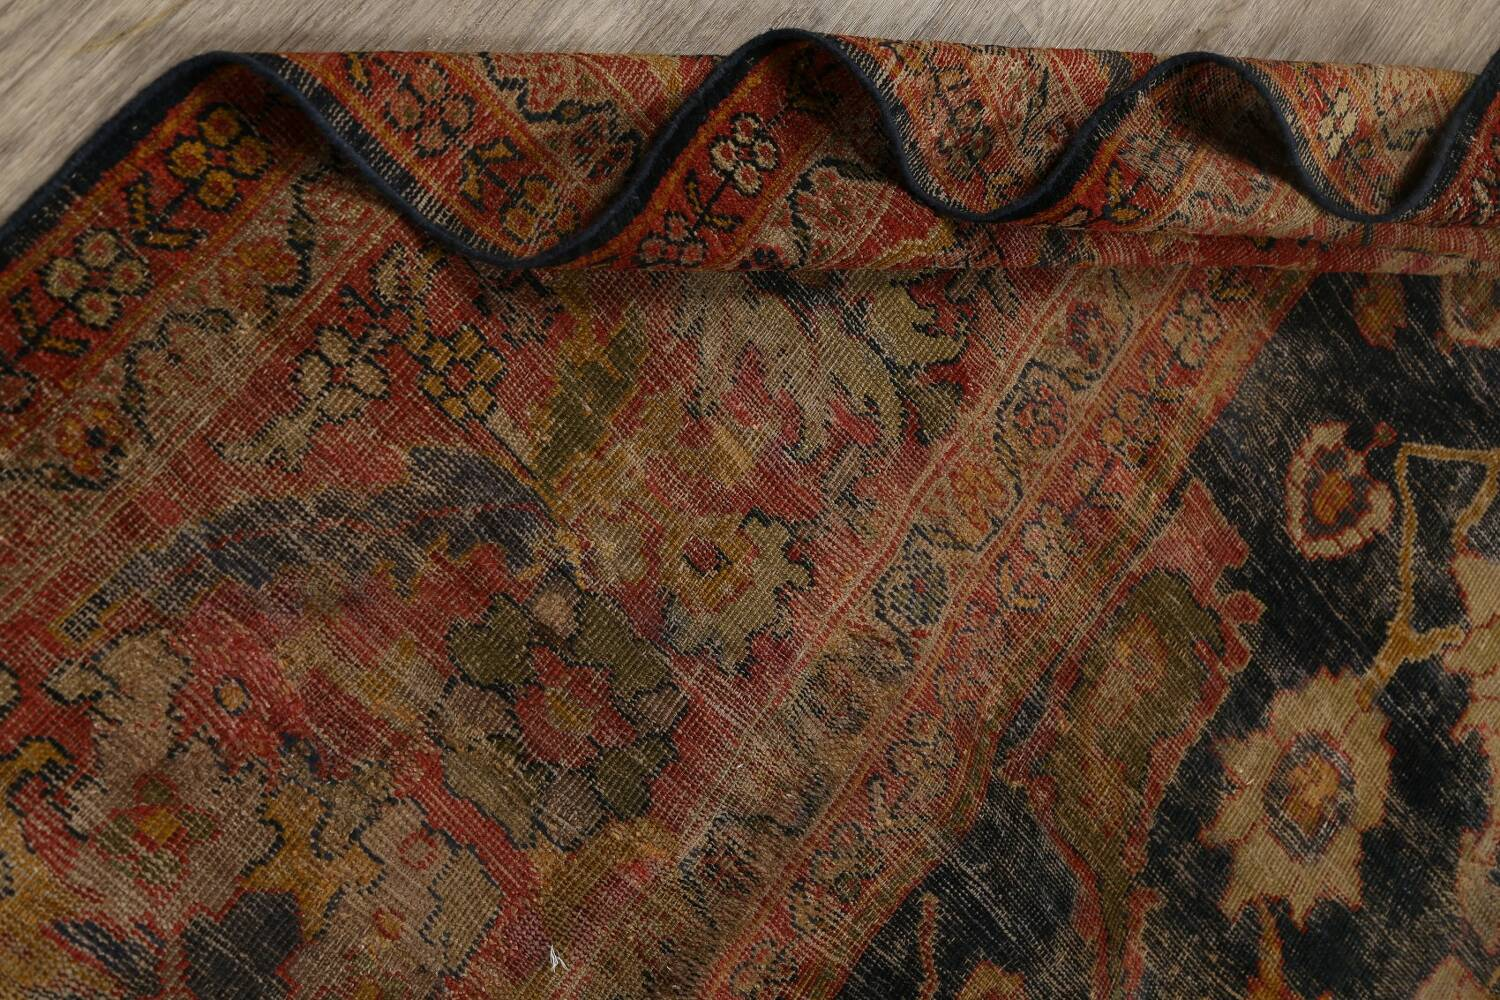 Antique Vegetable Dye Sultanabad Persian Area Rug 11x14 Large image 17